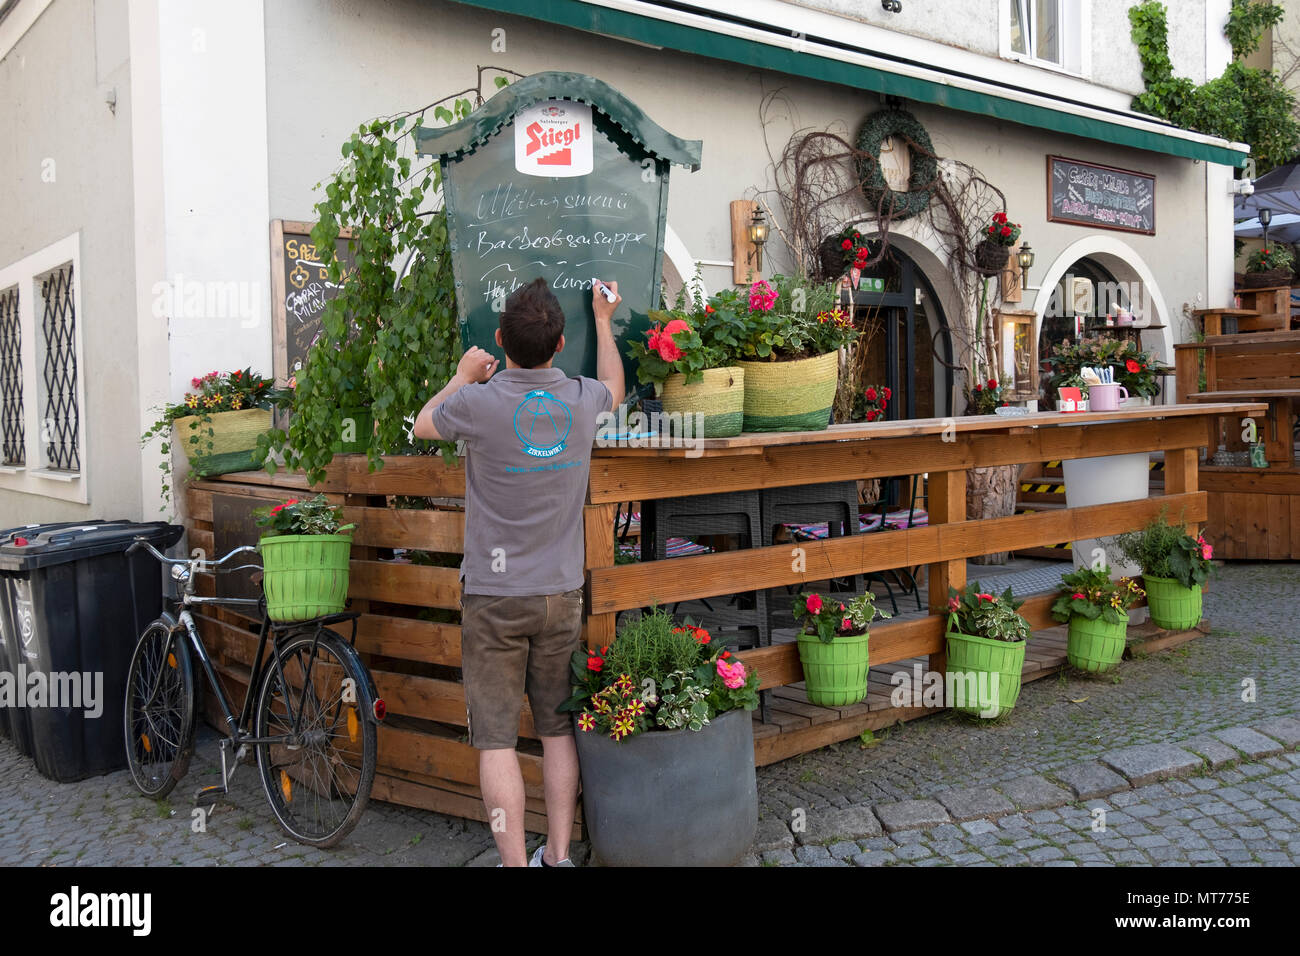 A waiter at the Zirkelwirt restaurant in Salzburg, Austria posts the daily menu specials on a chalkboard outside the restaurant. - Stock Image